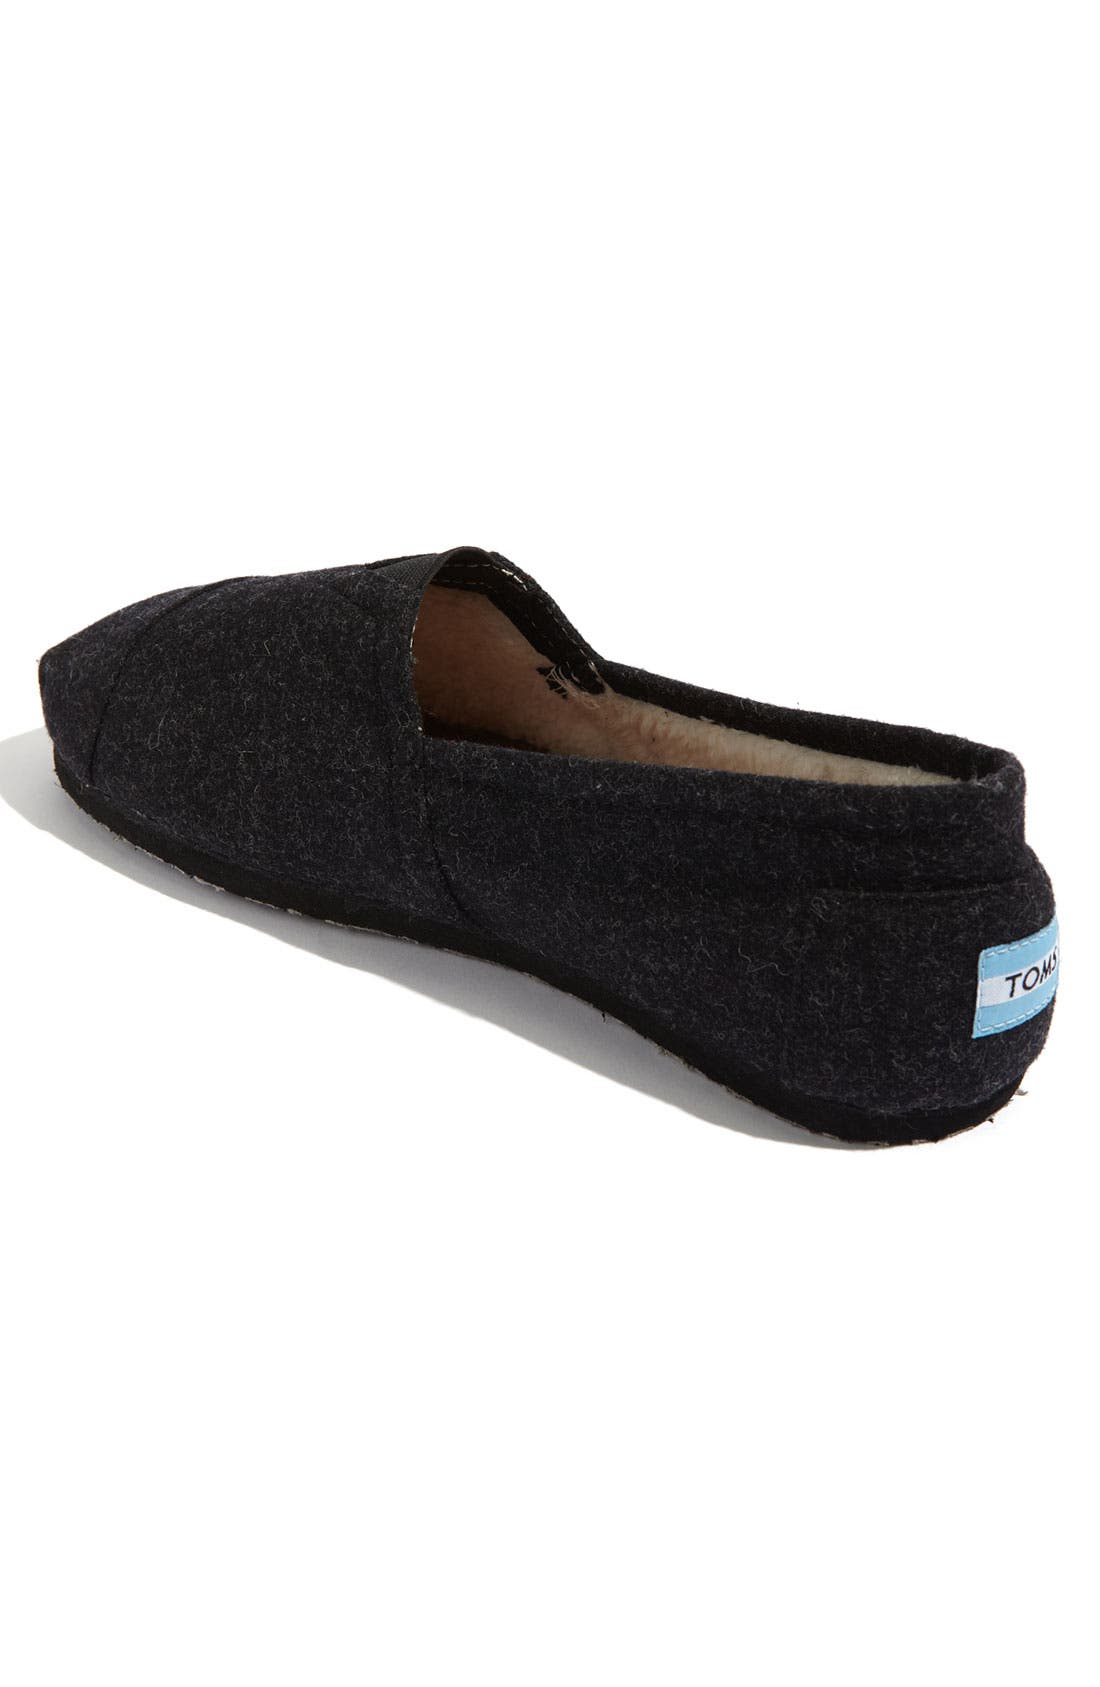 Alternate Image 2  - TOMS 'Classic' Woolen Slip-On (Men)